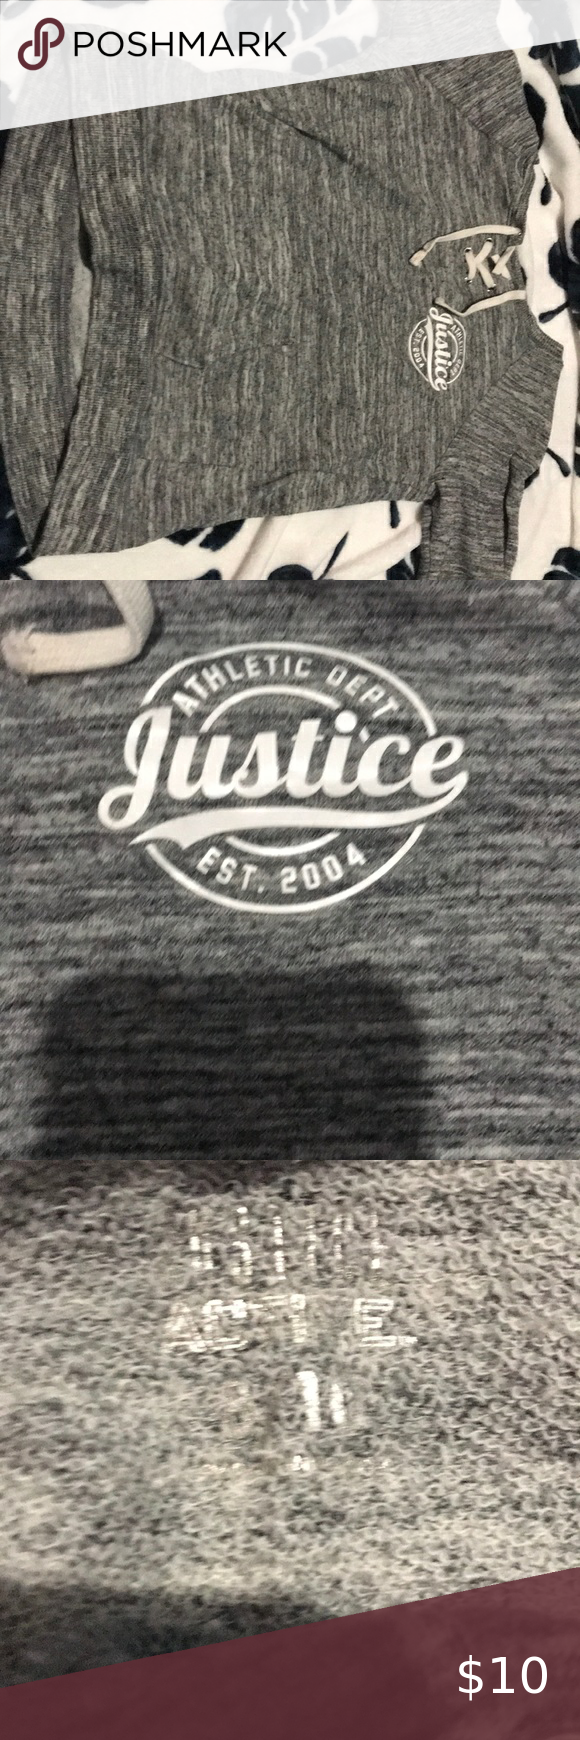 Gray Sweater From Justice Grey Sweater Sweaters Colorful Sweaters